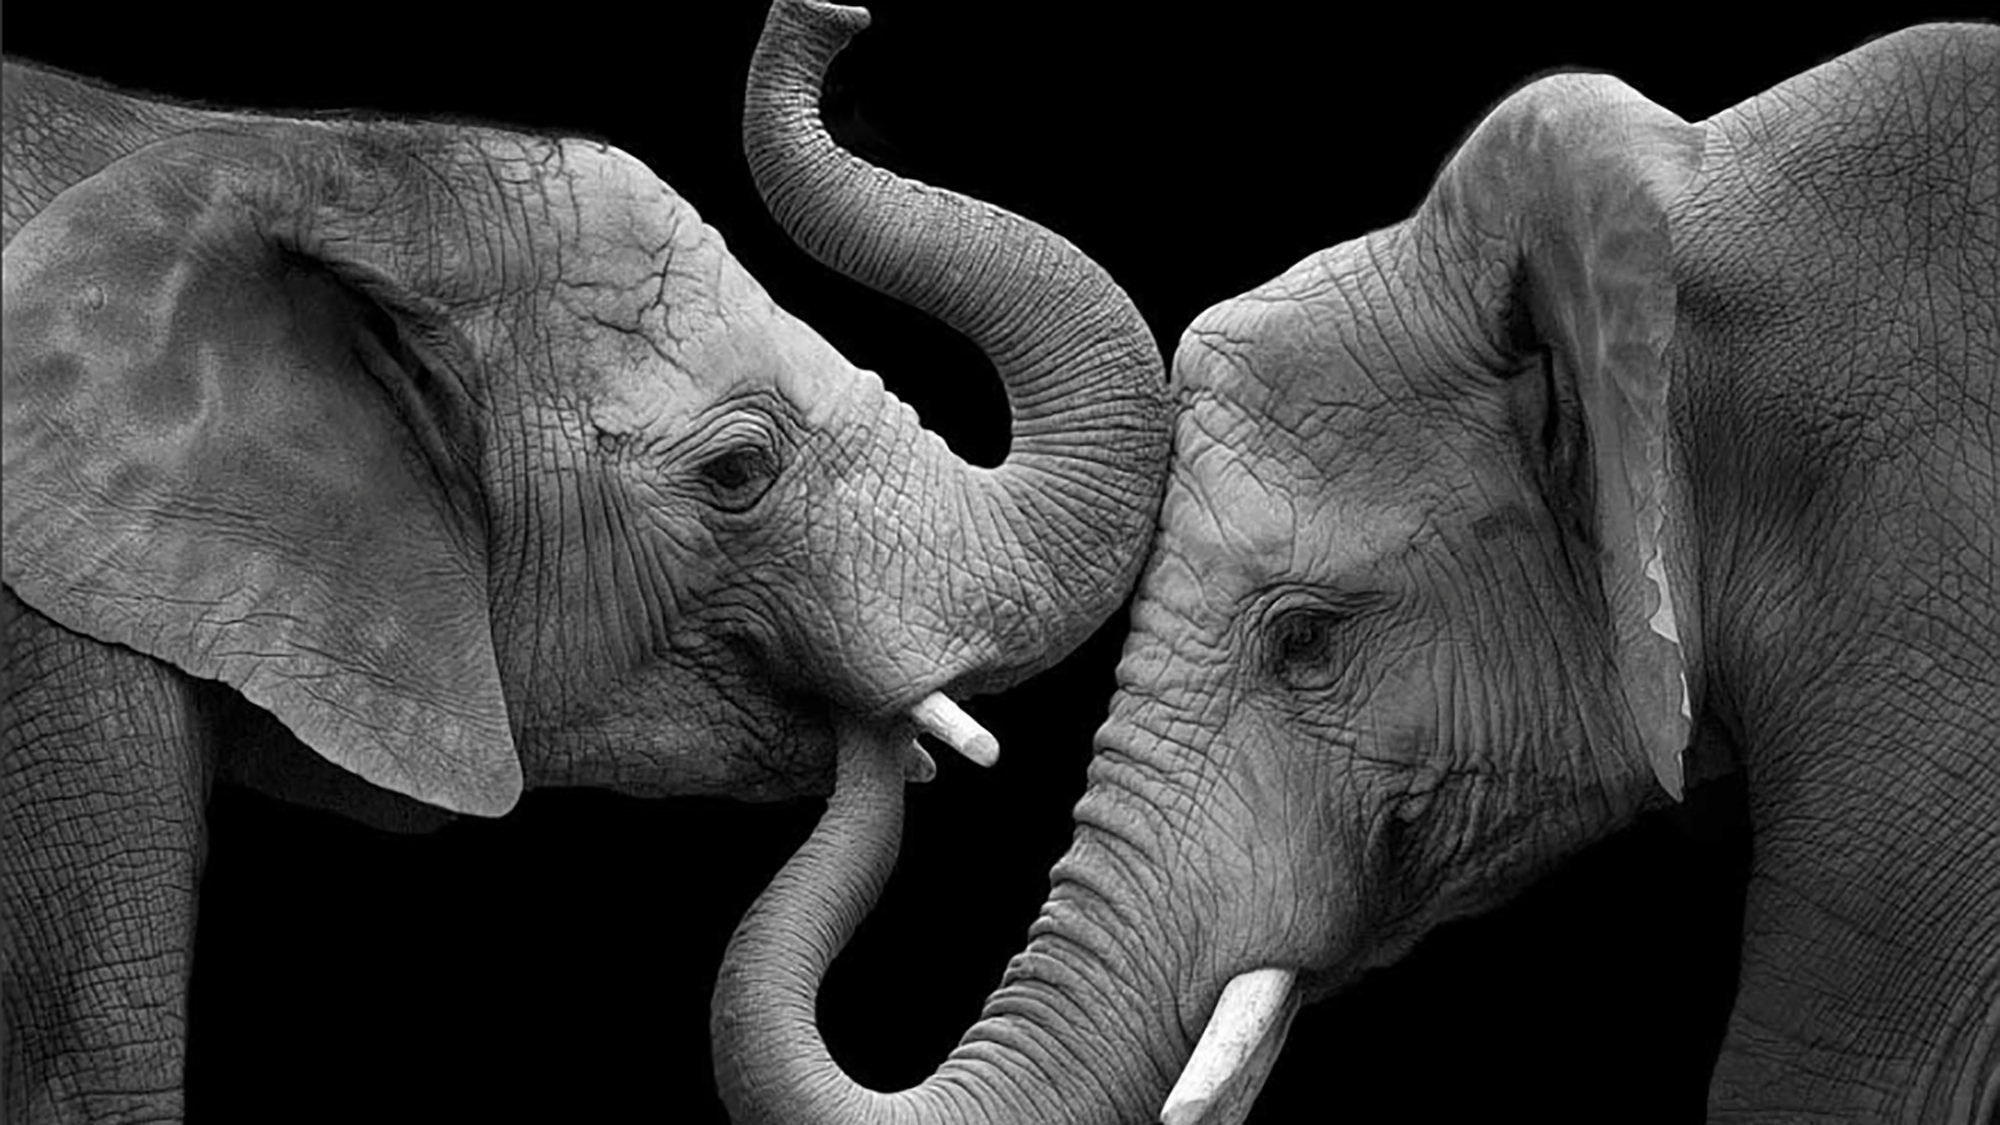 Amazing photos capture the intense emotions elephants experience